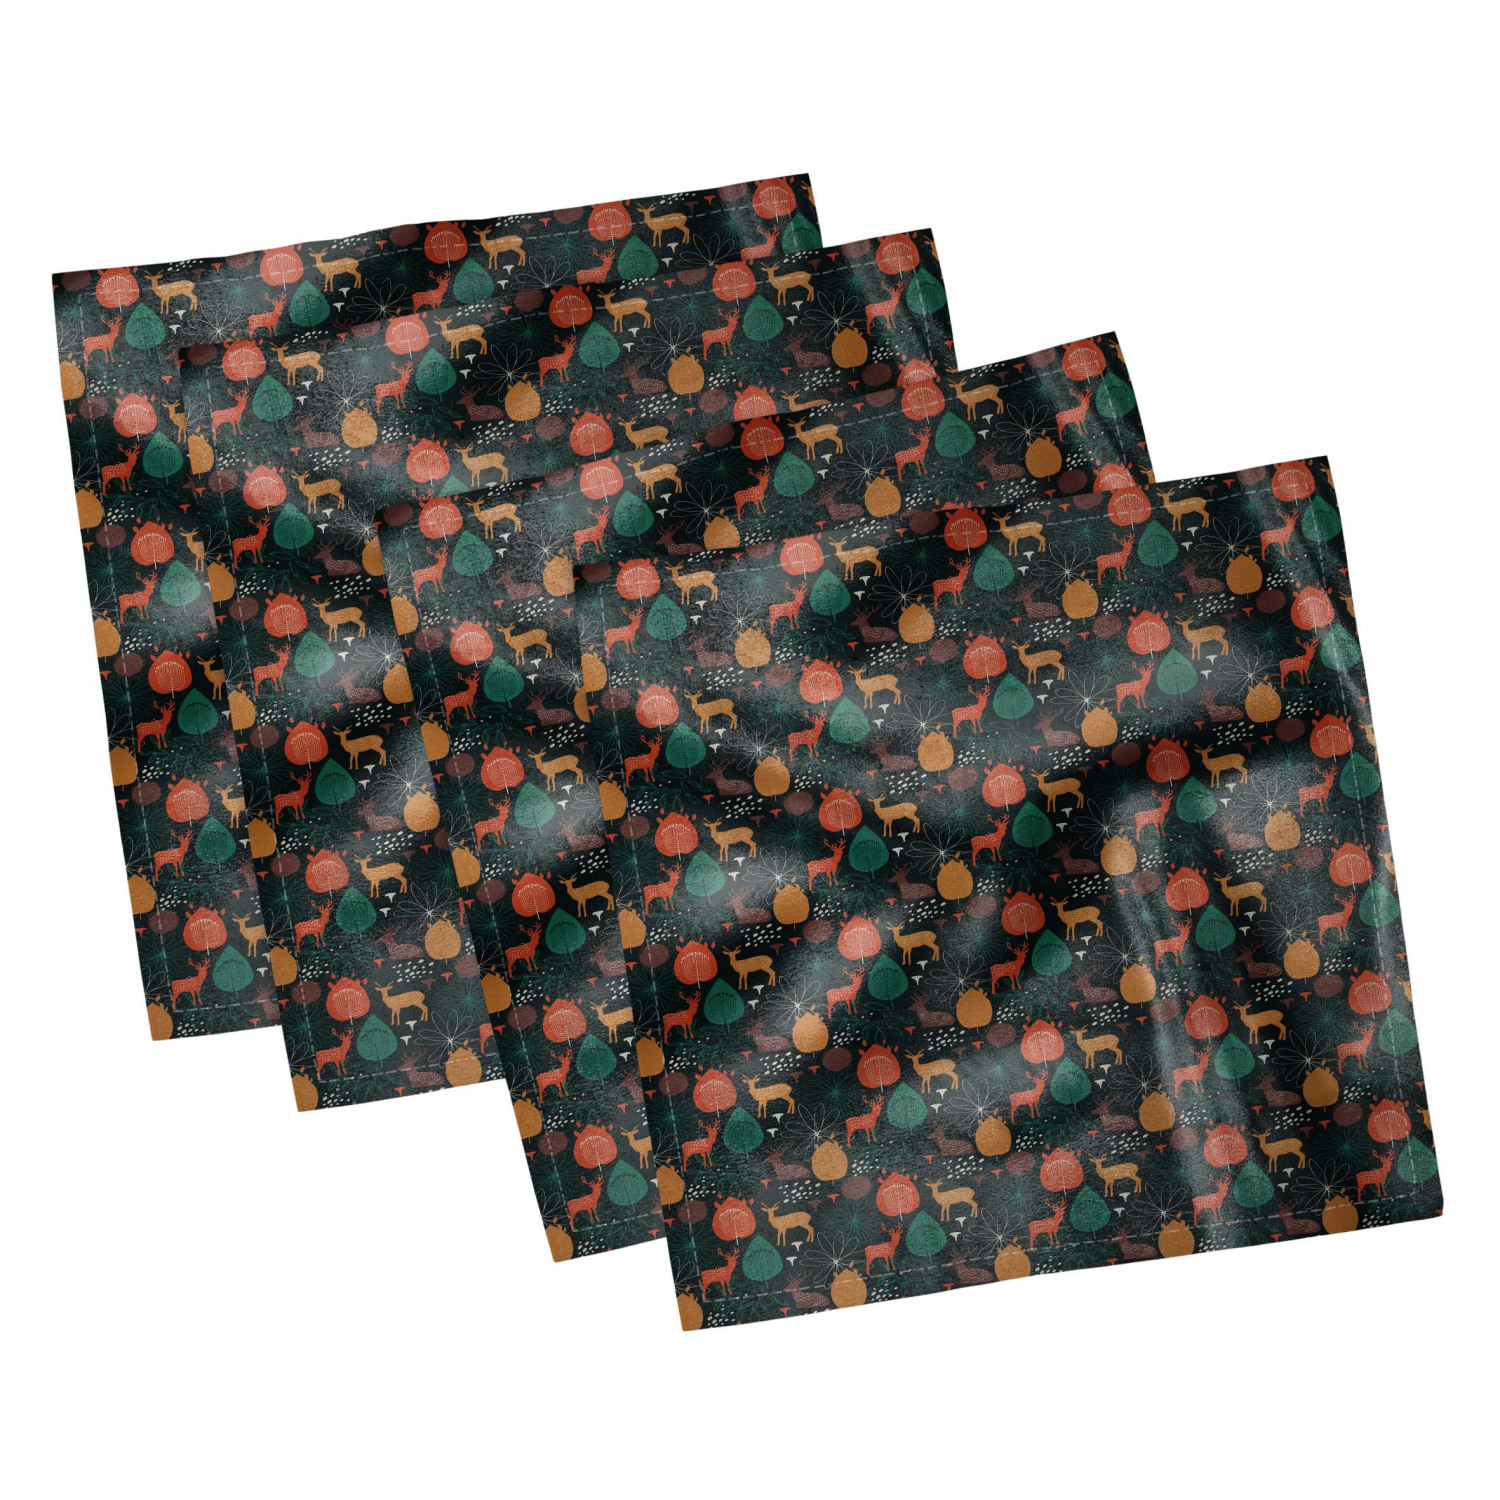 thumbnail 121 - Ambesonne-Autumn-Fall-Decorative-Satin-Napkins-Set-of-4-Party-Dinner-Fabric